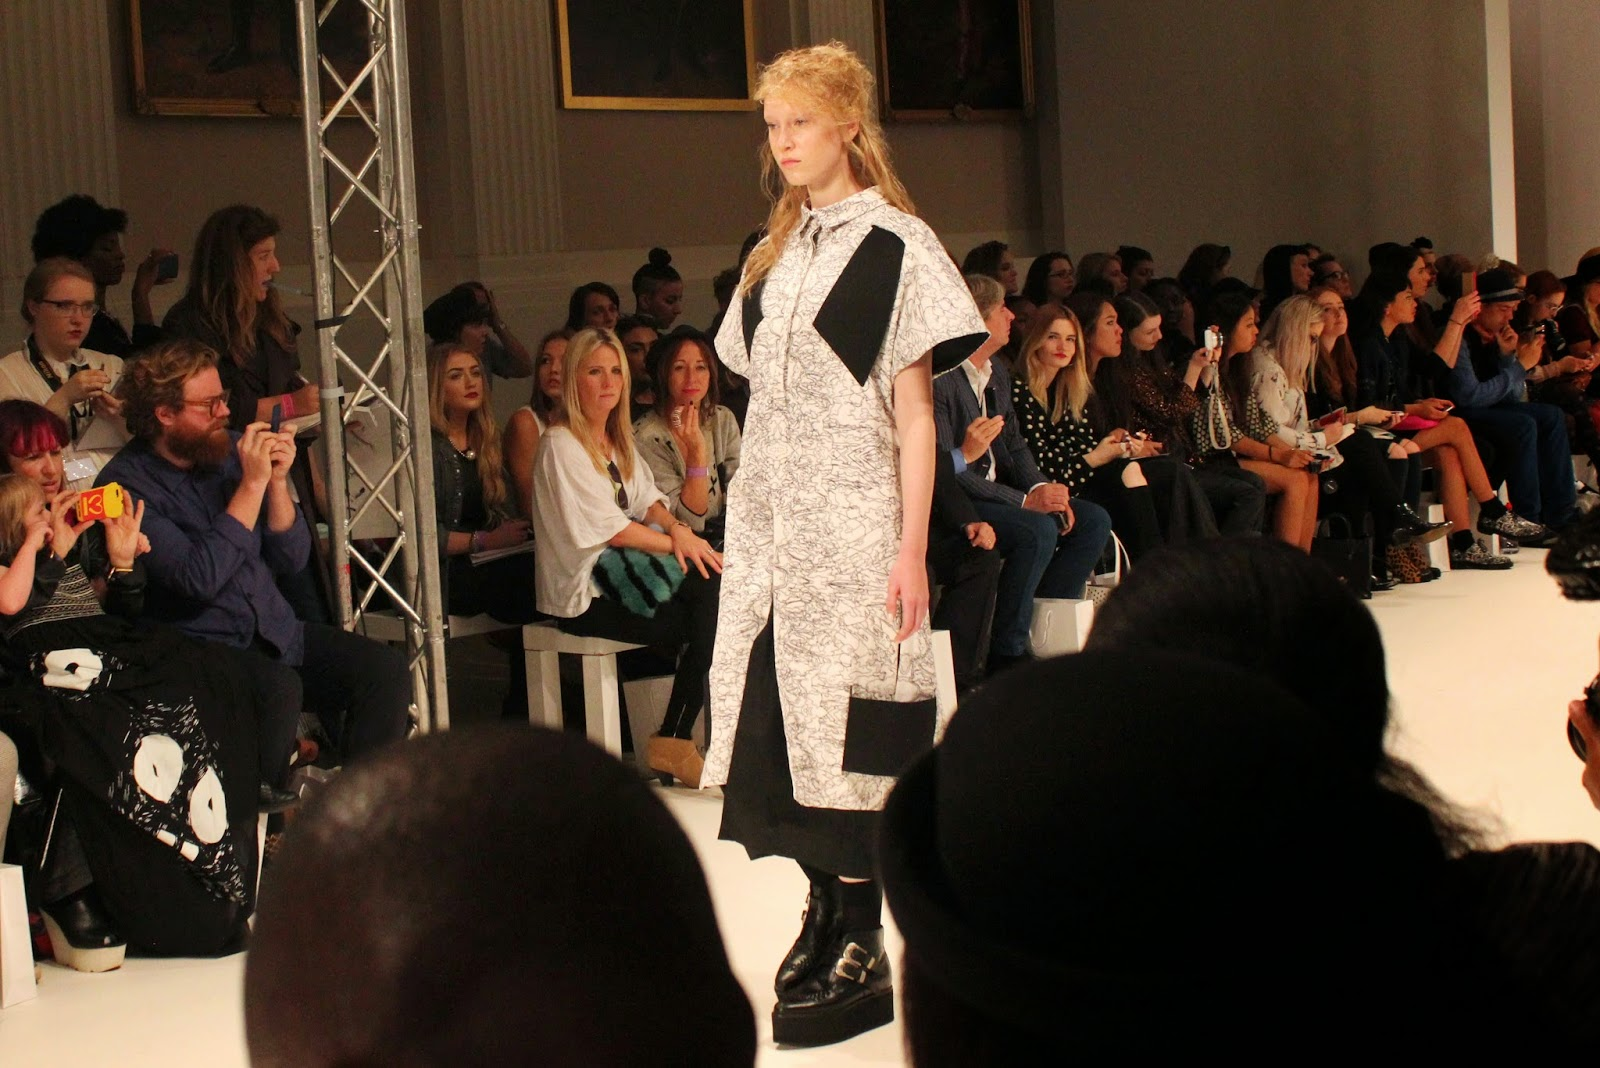 london-fashion-week-2014-lfw-spring-summer-2015-blogger-fashion-Dioralop-catwalk-models-freemasons hall-fashion-scout-shirt-dress-shoes